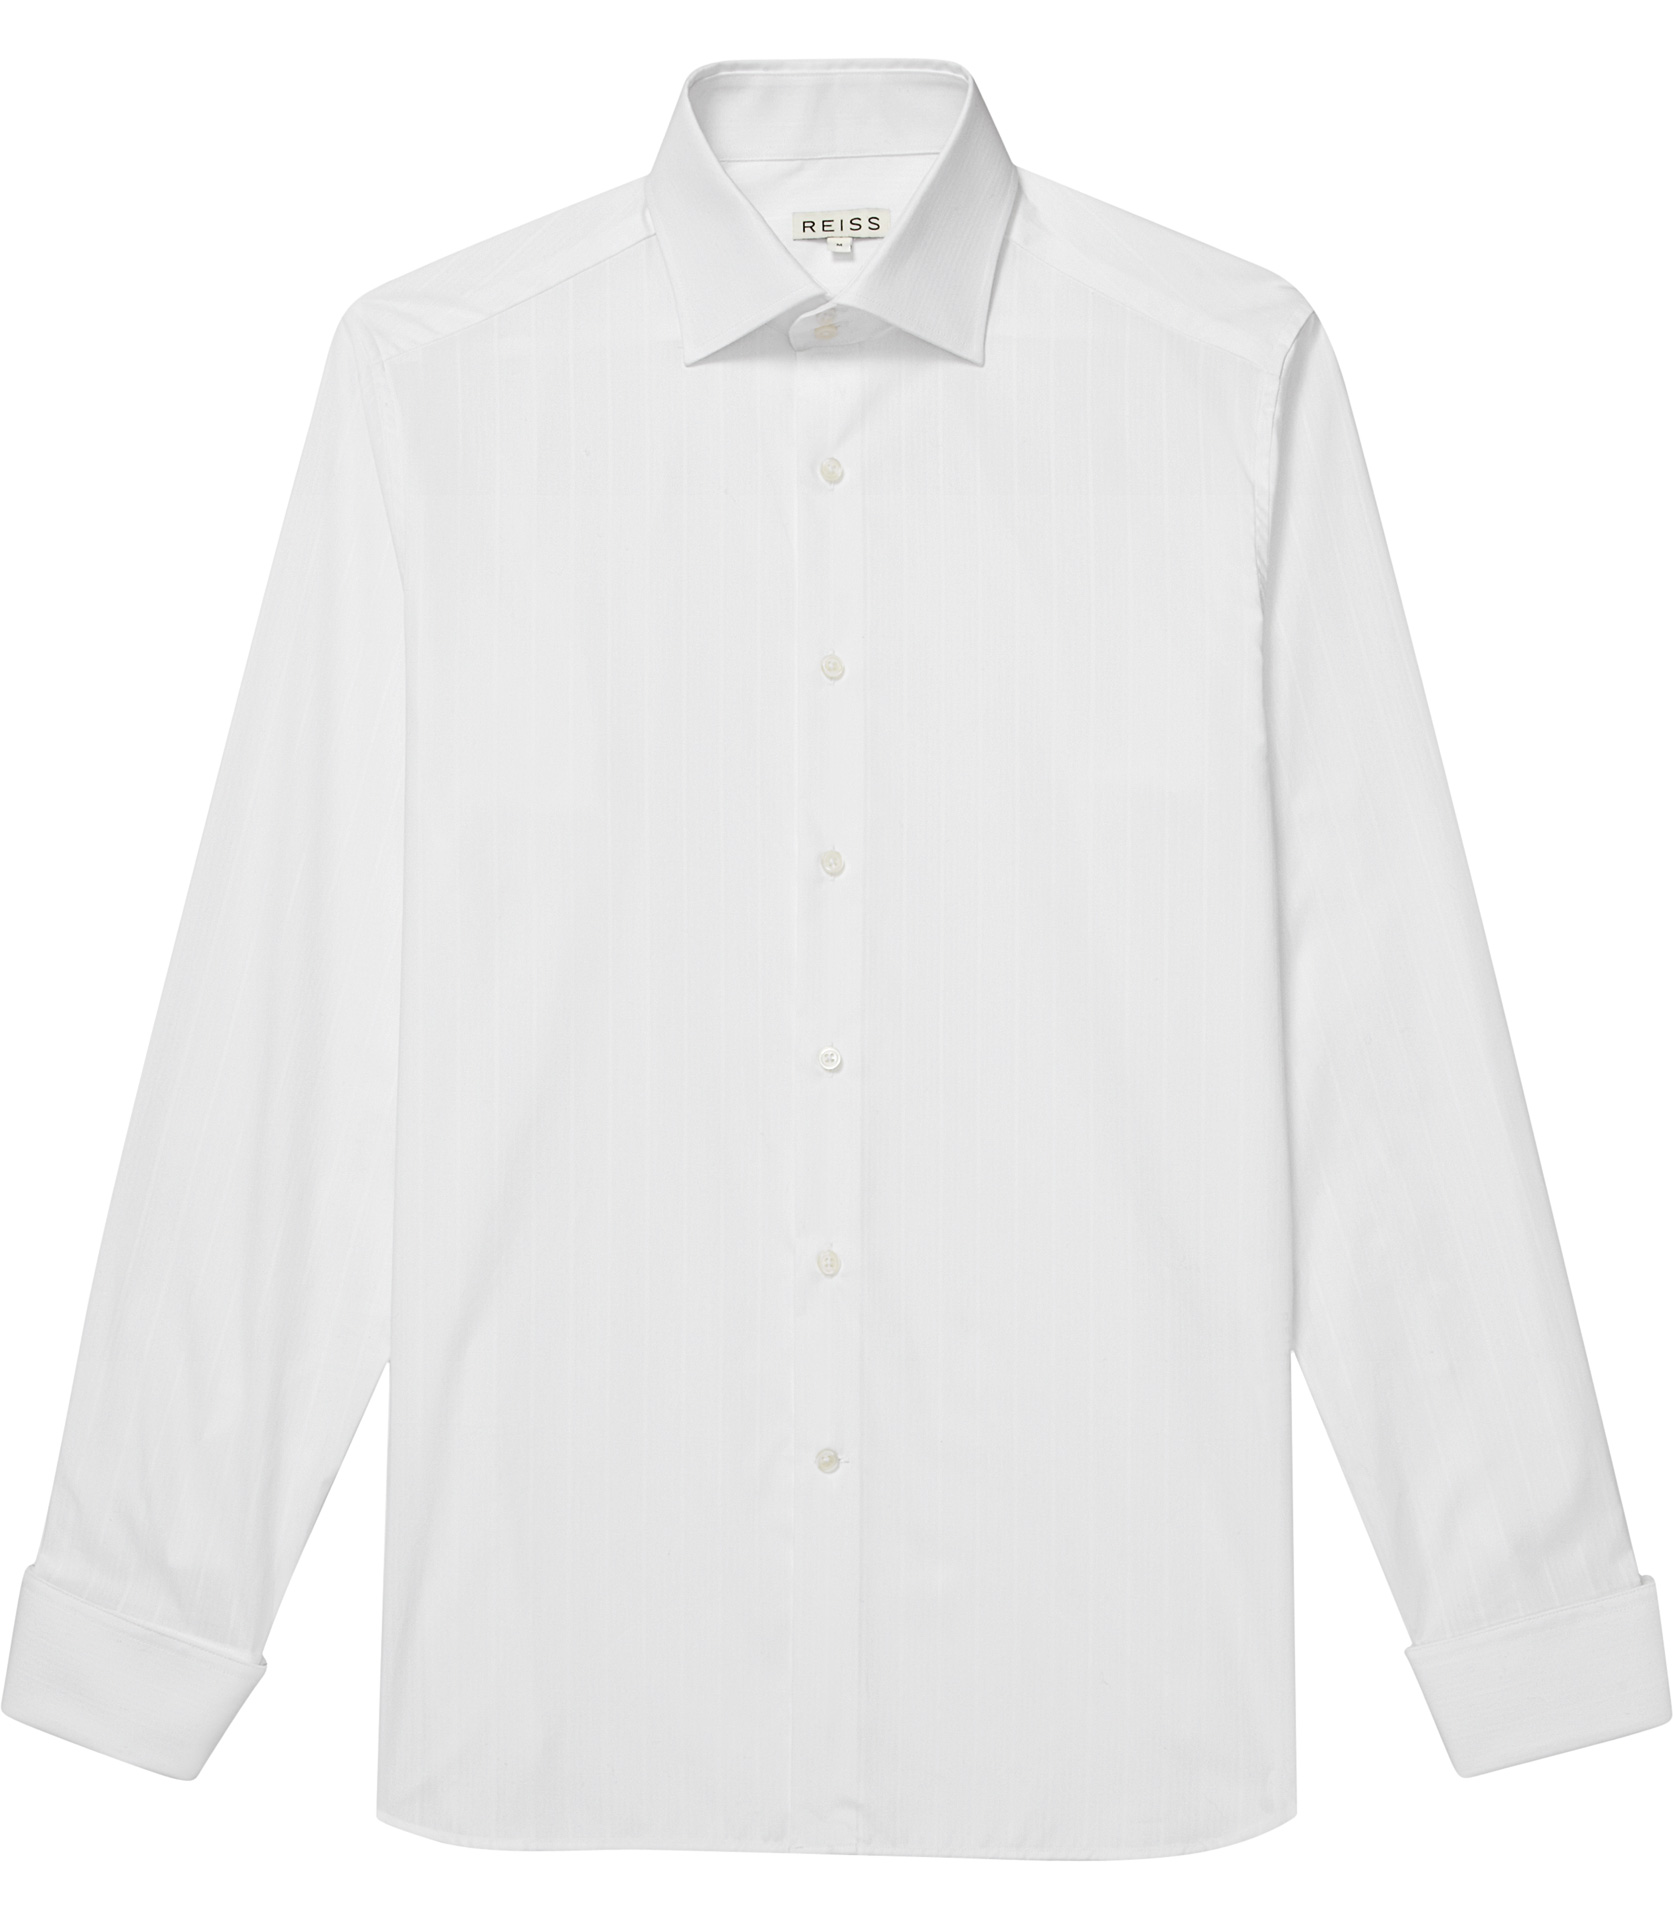 Reiss long sleeve cocktail cuff shirt in white for men lyst for Mens white cufflink shirts